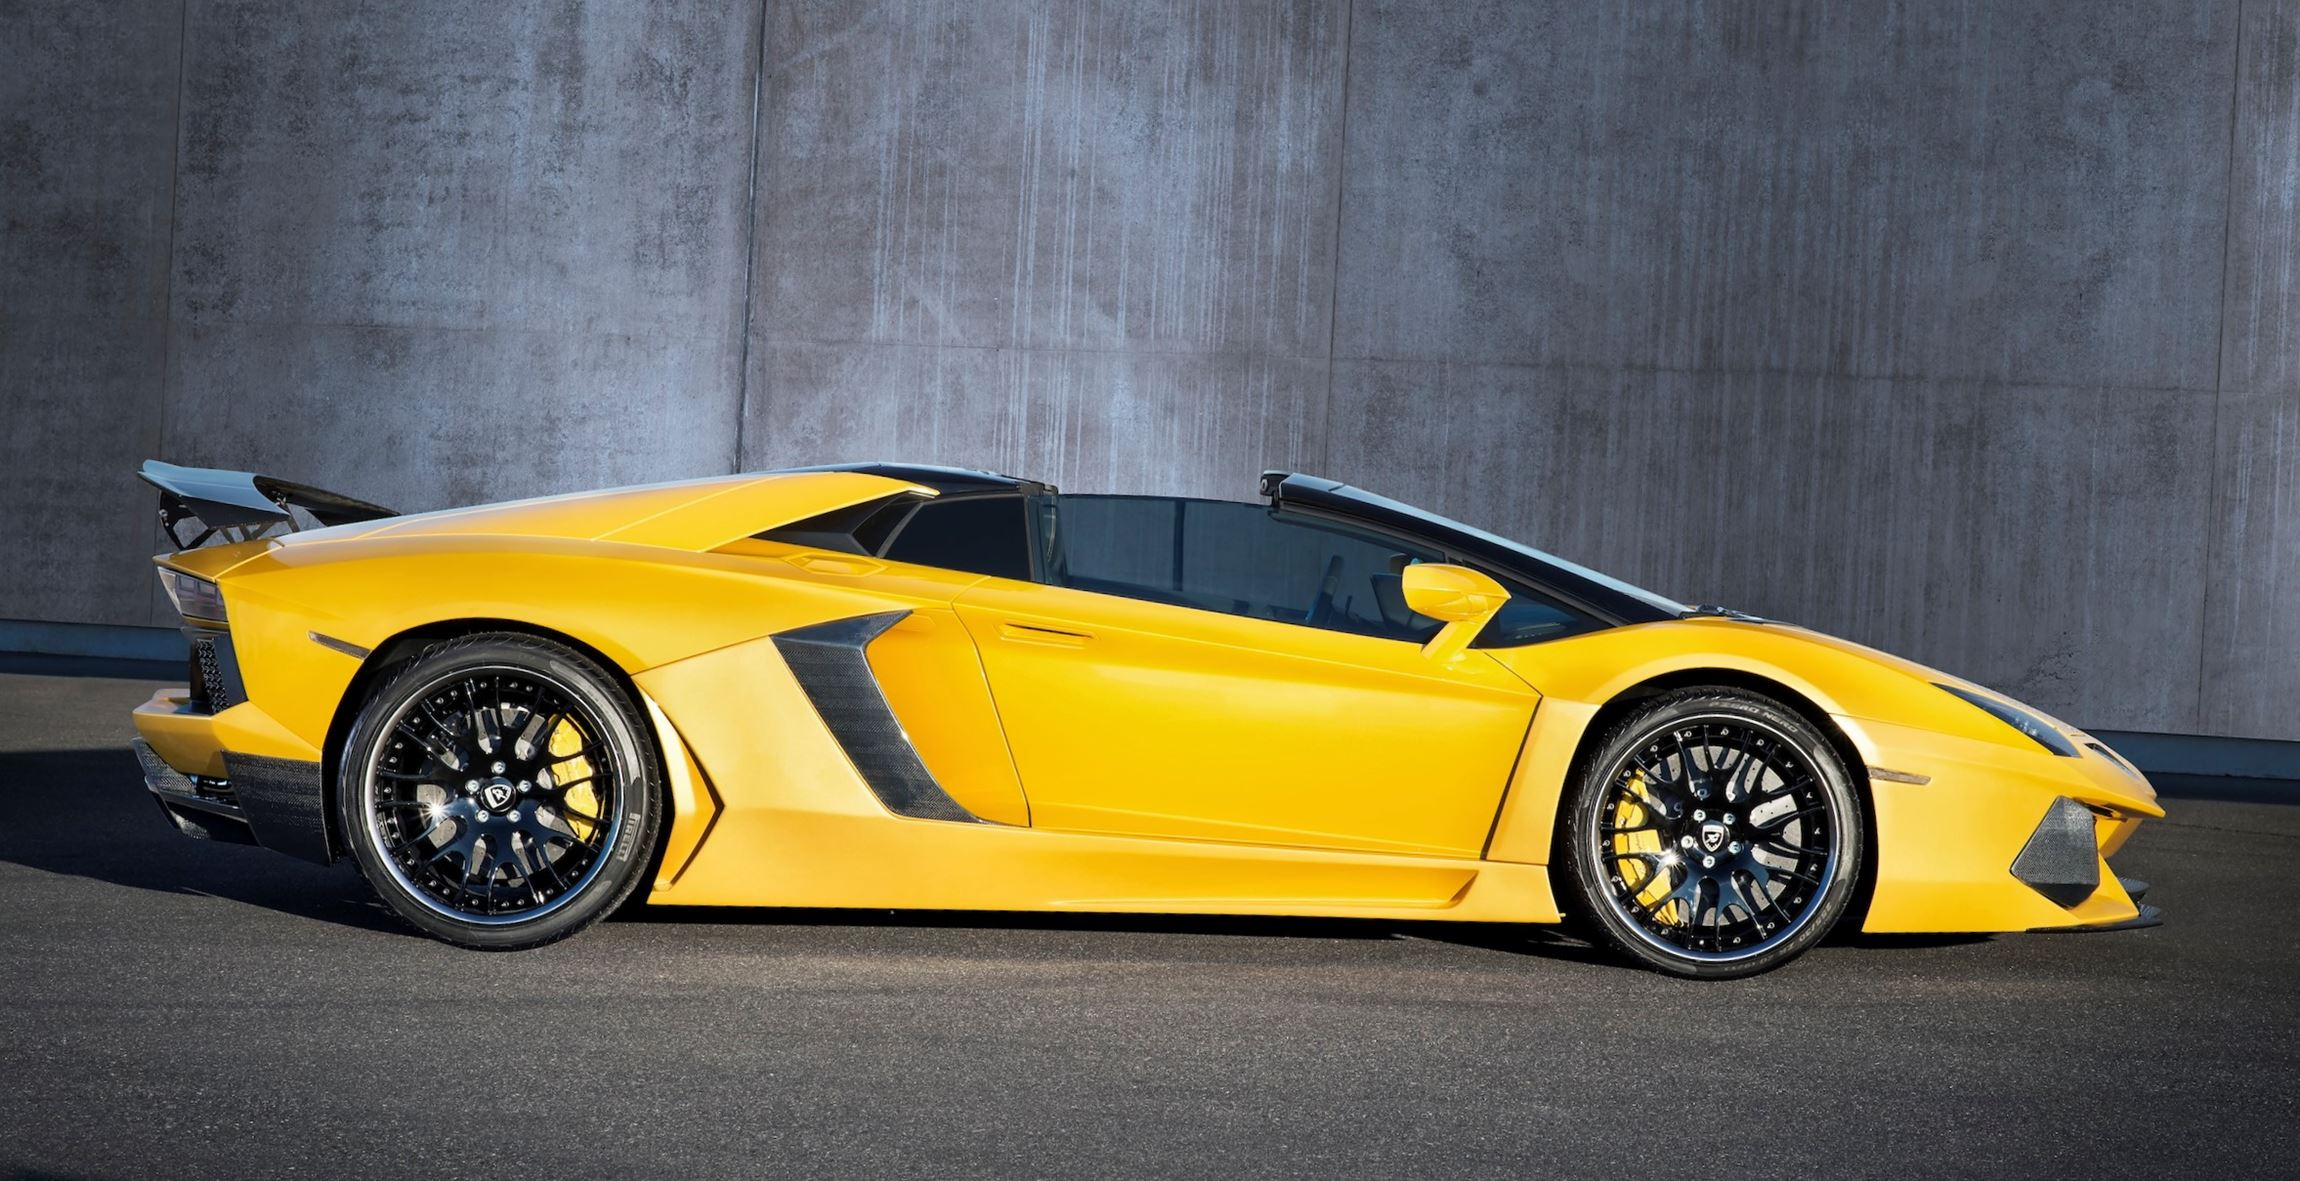 hamann lamborghini aventador roadster exotic aerokit banishes sv envy. Black Bedroom Furniture Sets. Home Design Ideas